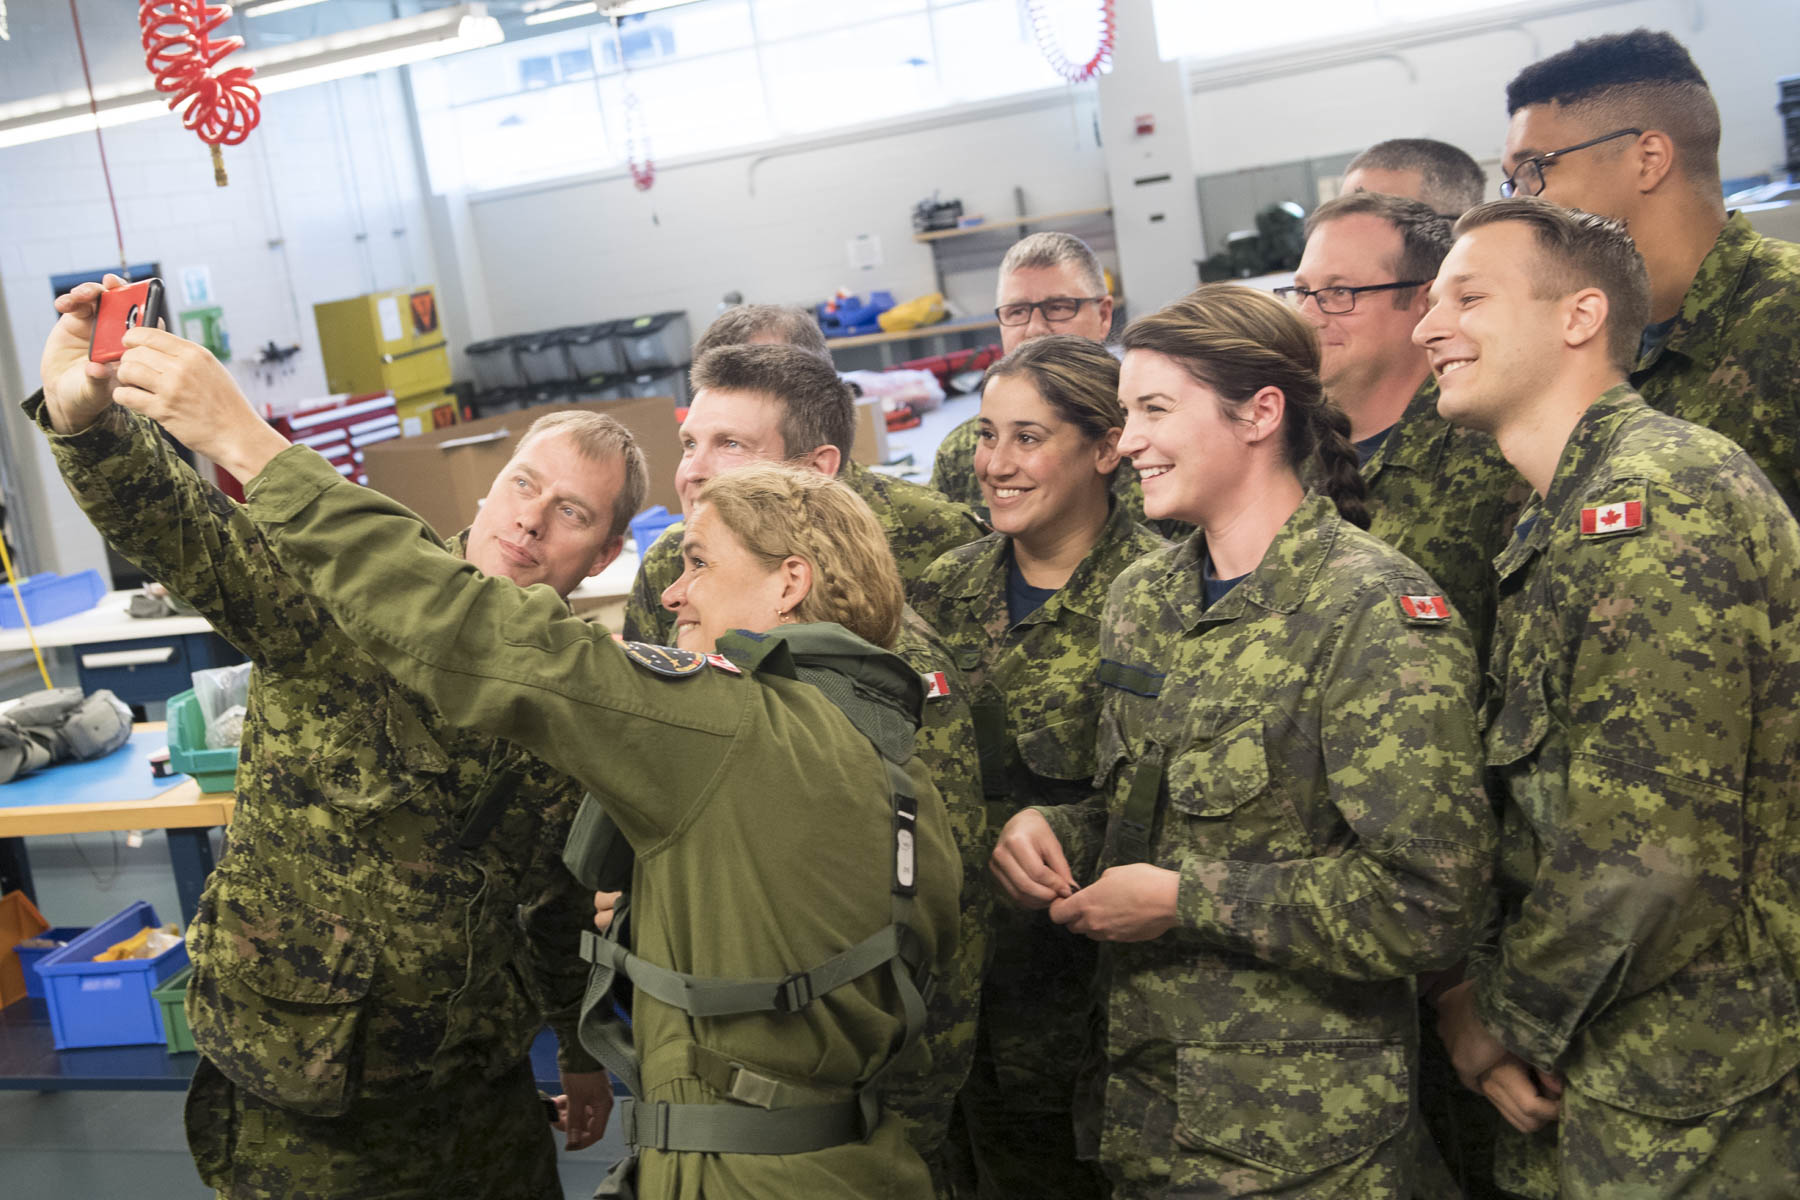 Afterwards, Her Excellency met with instructors and students at 406 Squadron to learn about the skills required to operate and maintain the CH-148 Cyclone.